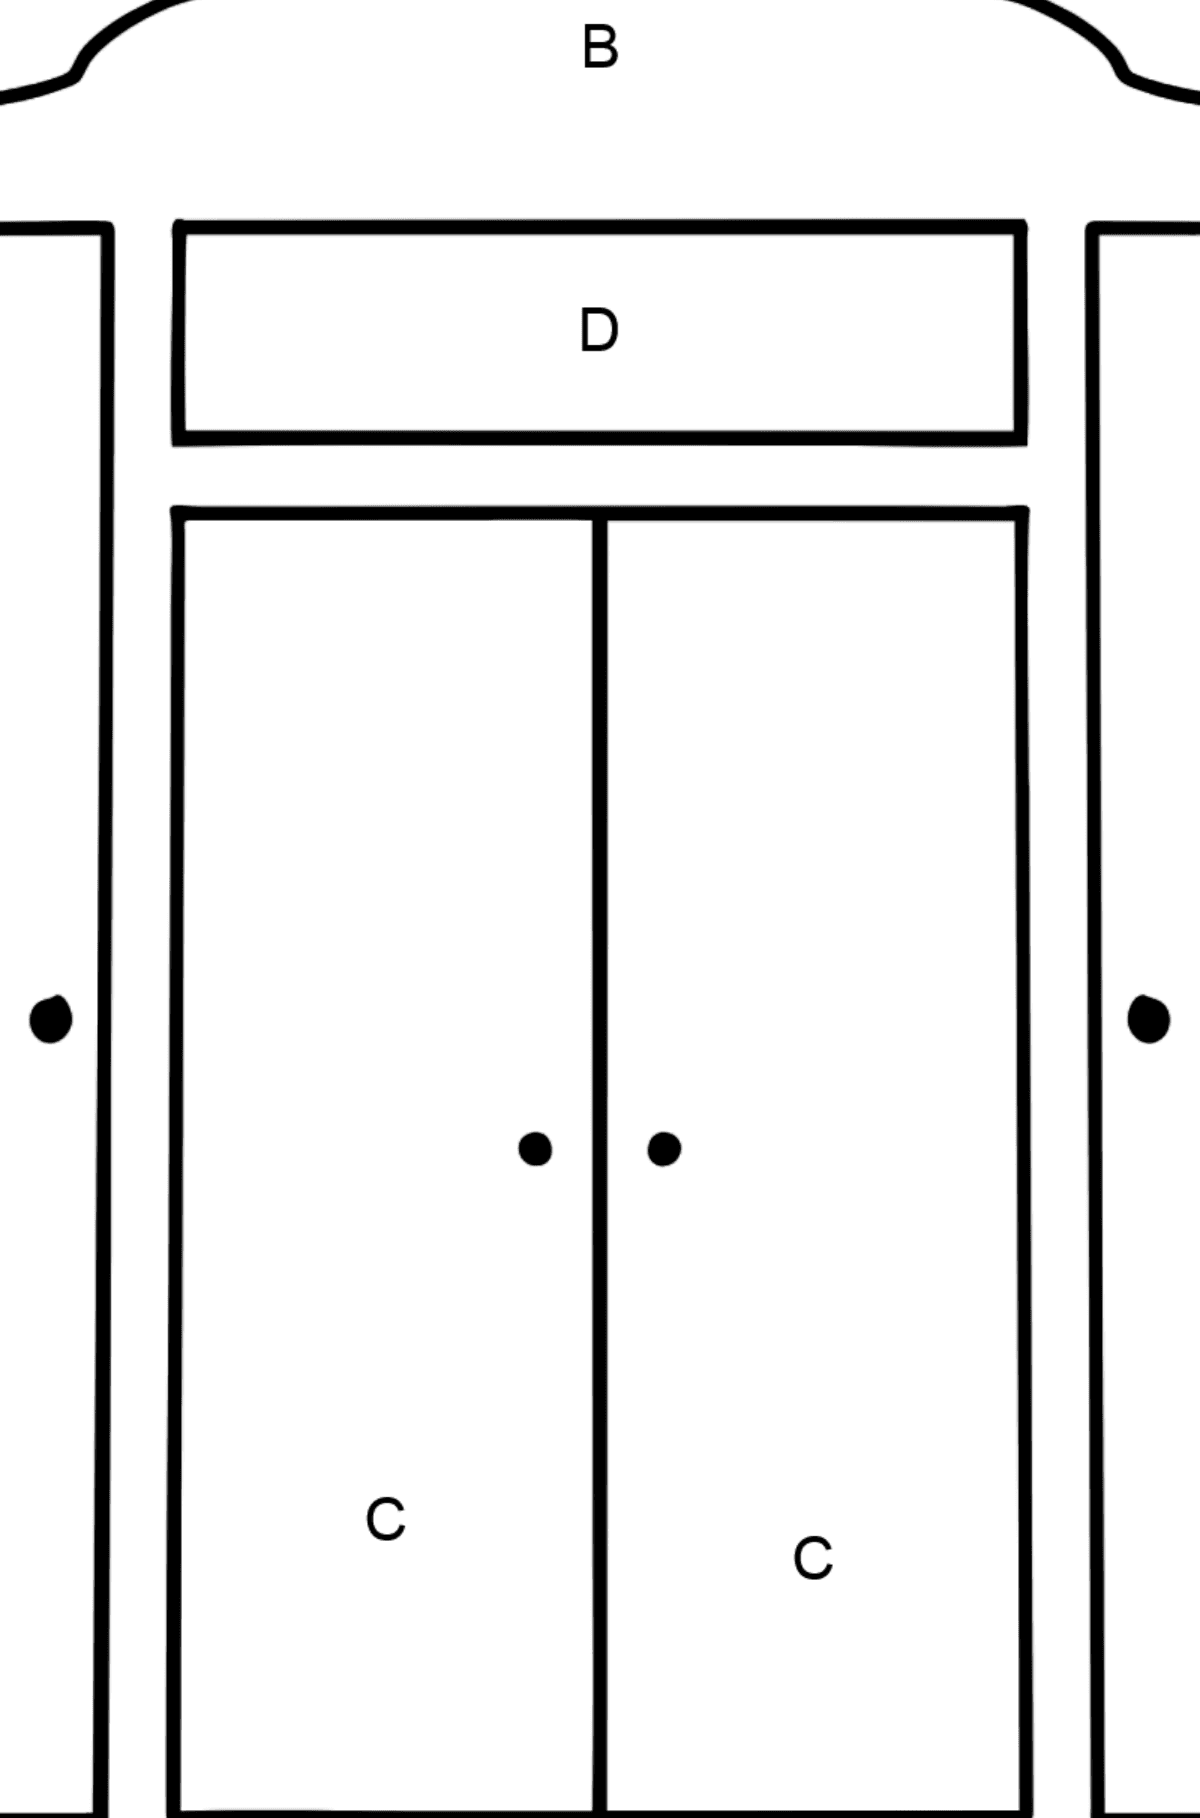 Wardrobe coloring page - Coloring by Letters for Kids